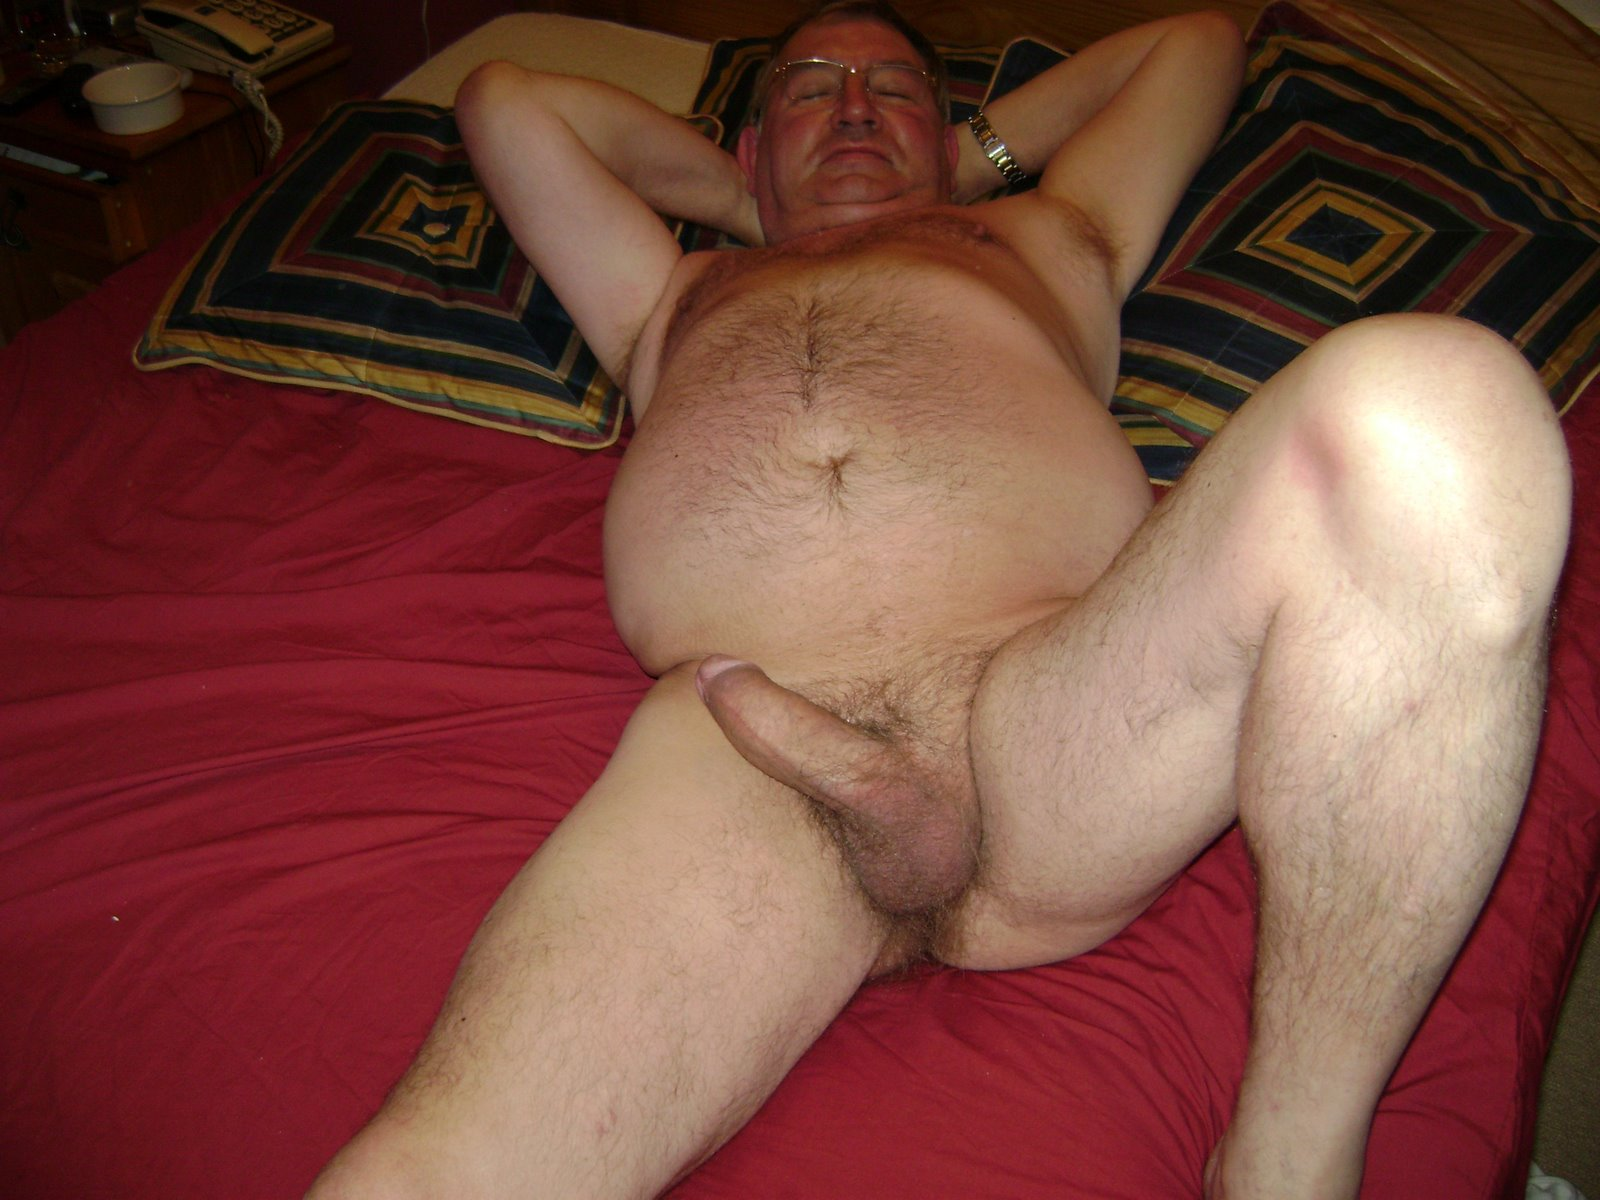 Older dad daddies chubby bald couple hard bare fuck creamed ass rim 9